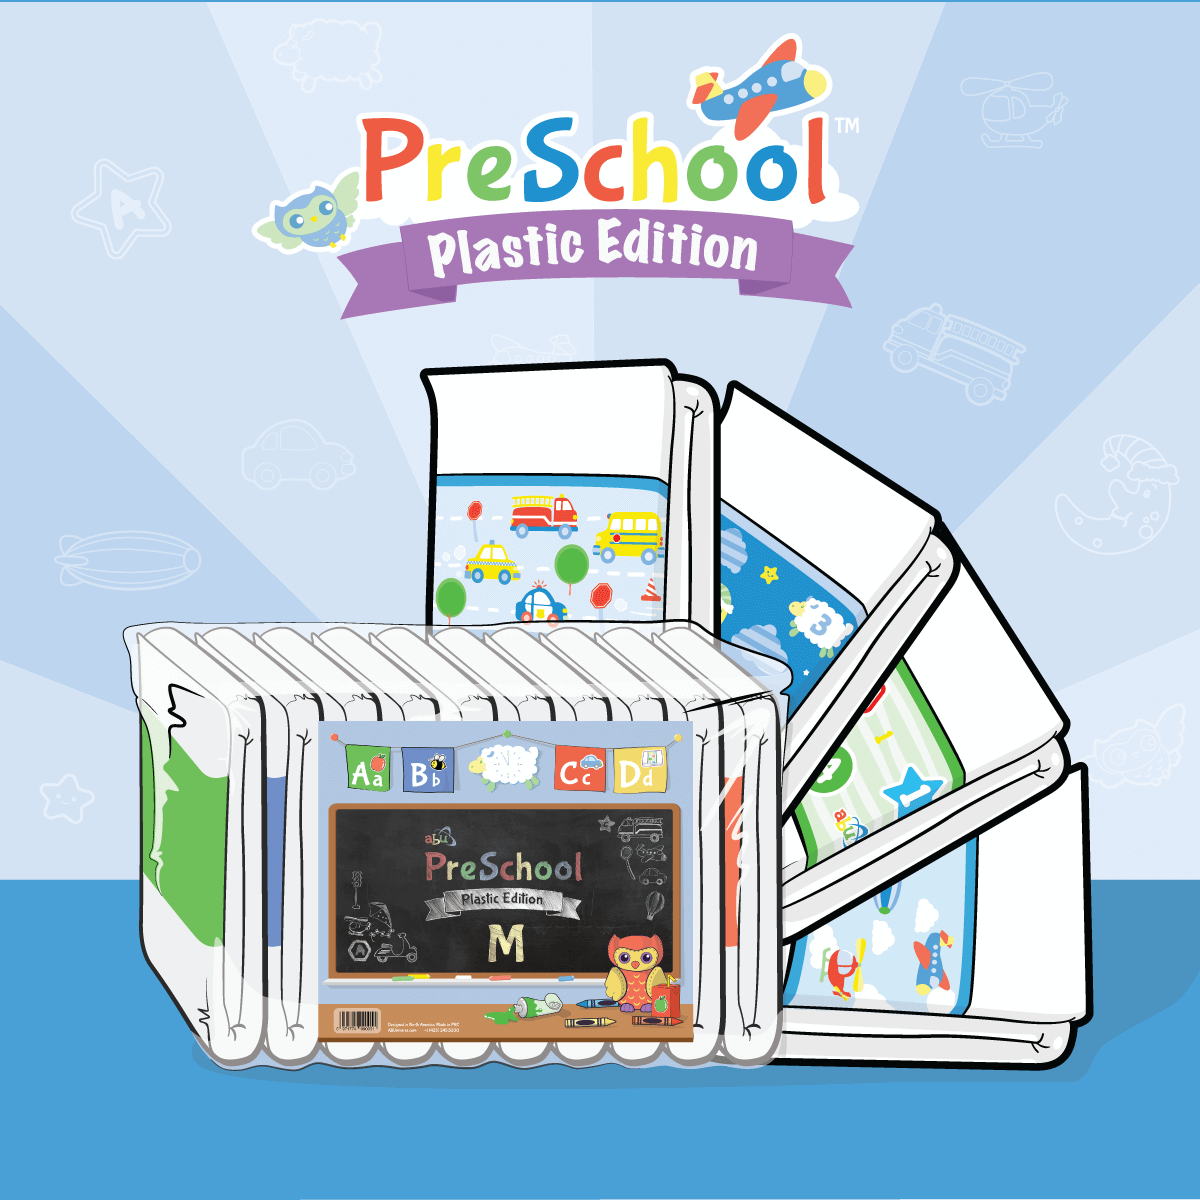 Preschool_Plastic_feature_image